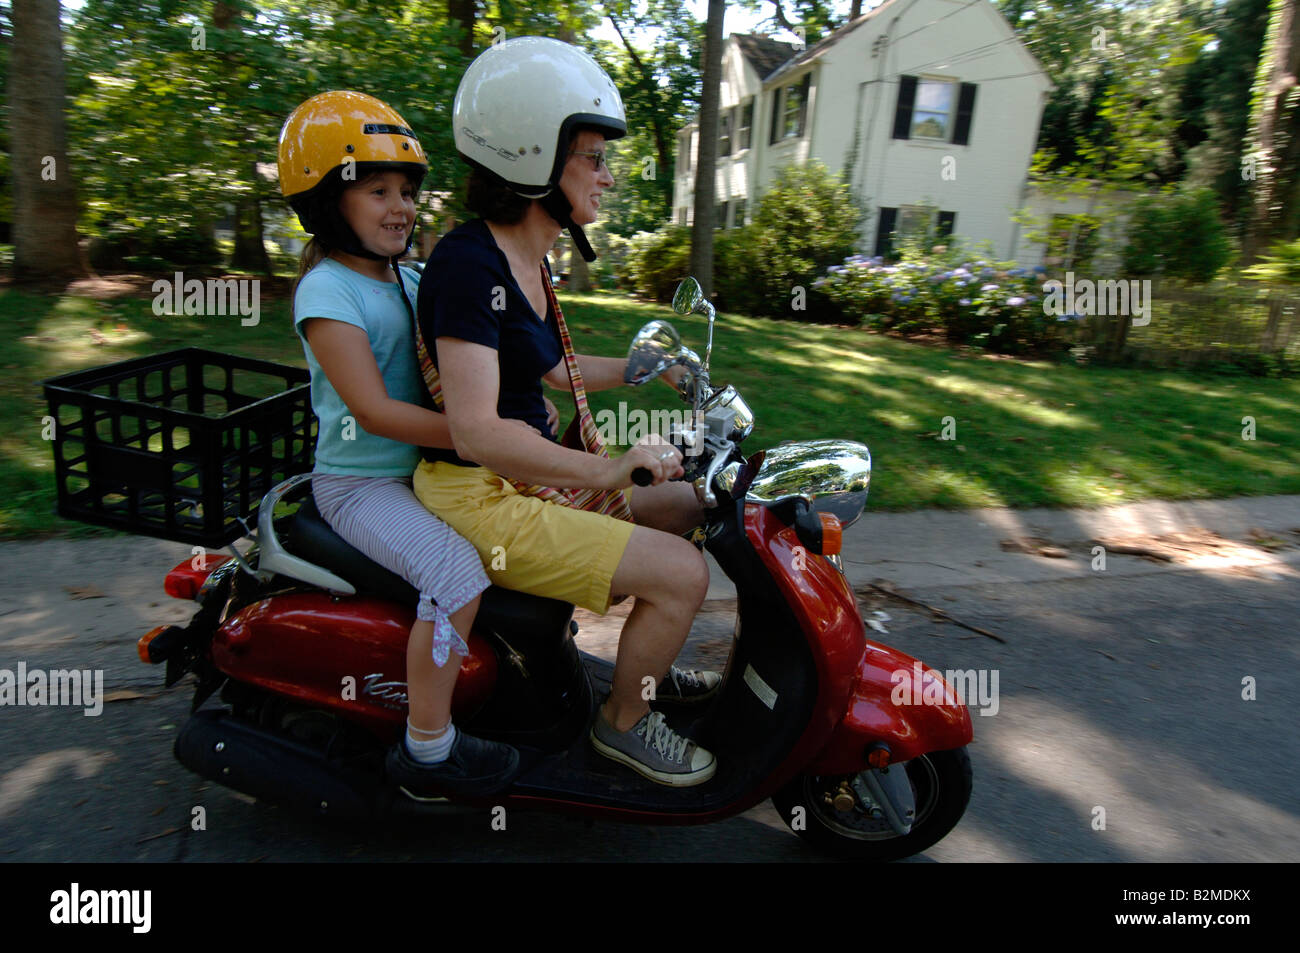 Woman and 7 year old ride Yamaha Vino scooter Stock Photo: 18889470 ...